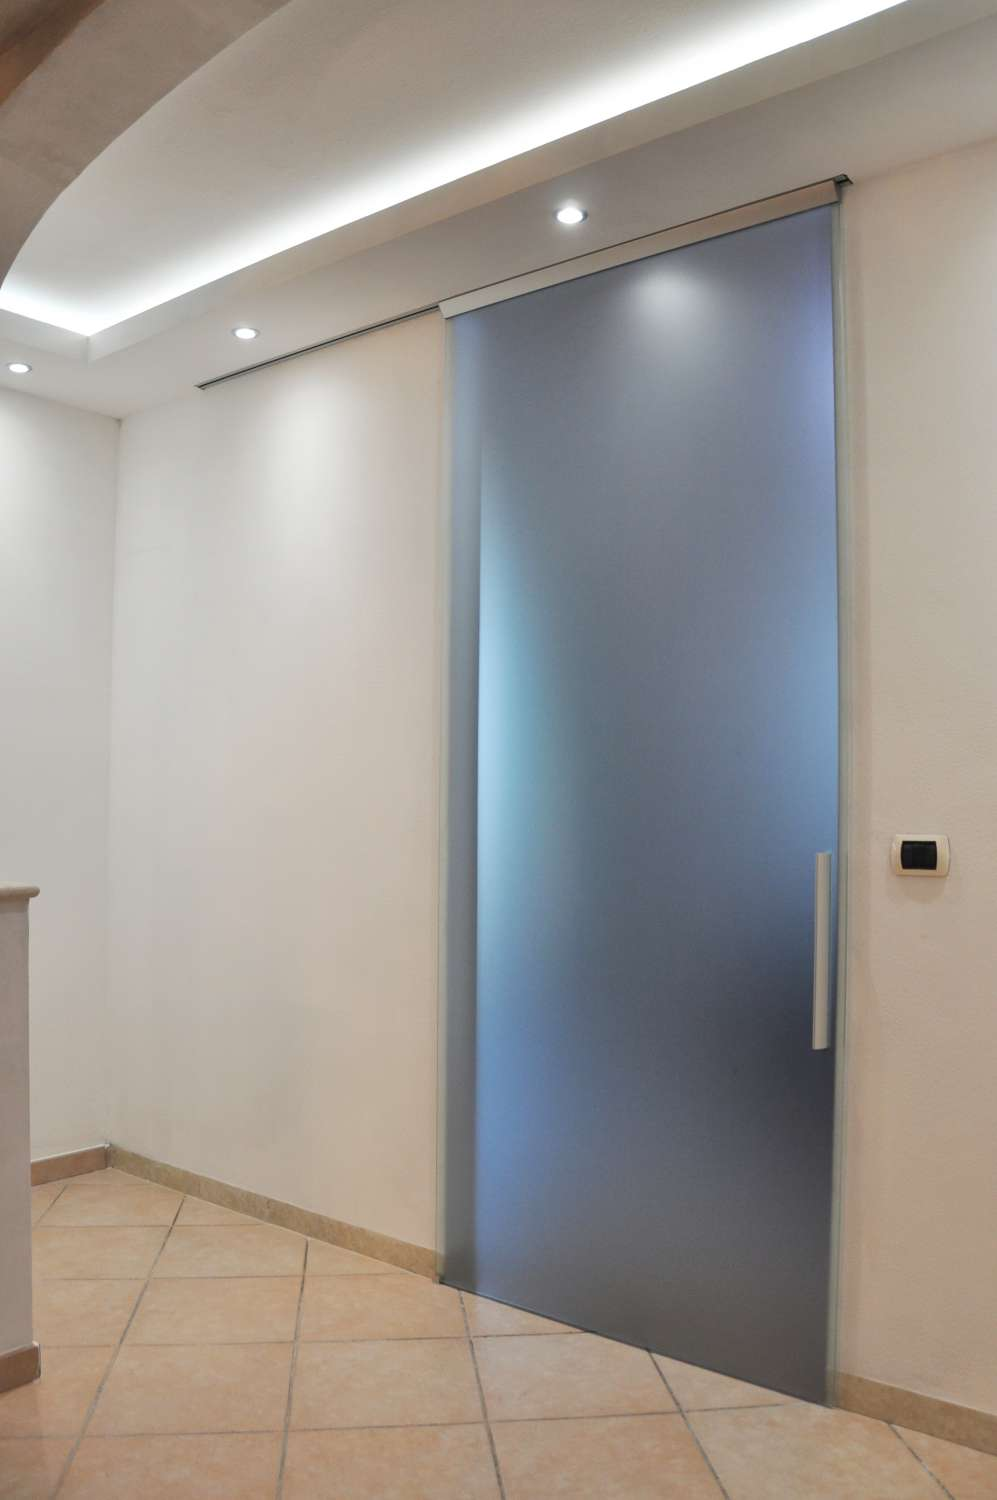 Porta Scorrevole Esterna Vetro mazzoli glass doors | sliding glass door light quality' silent